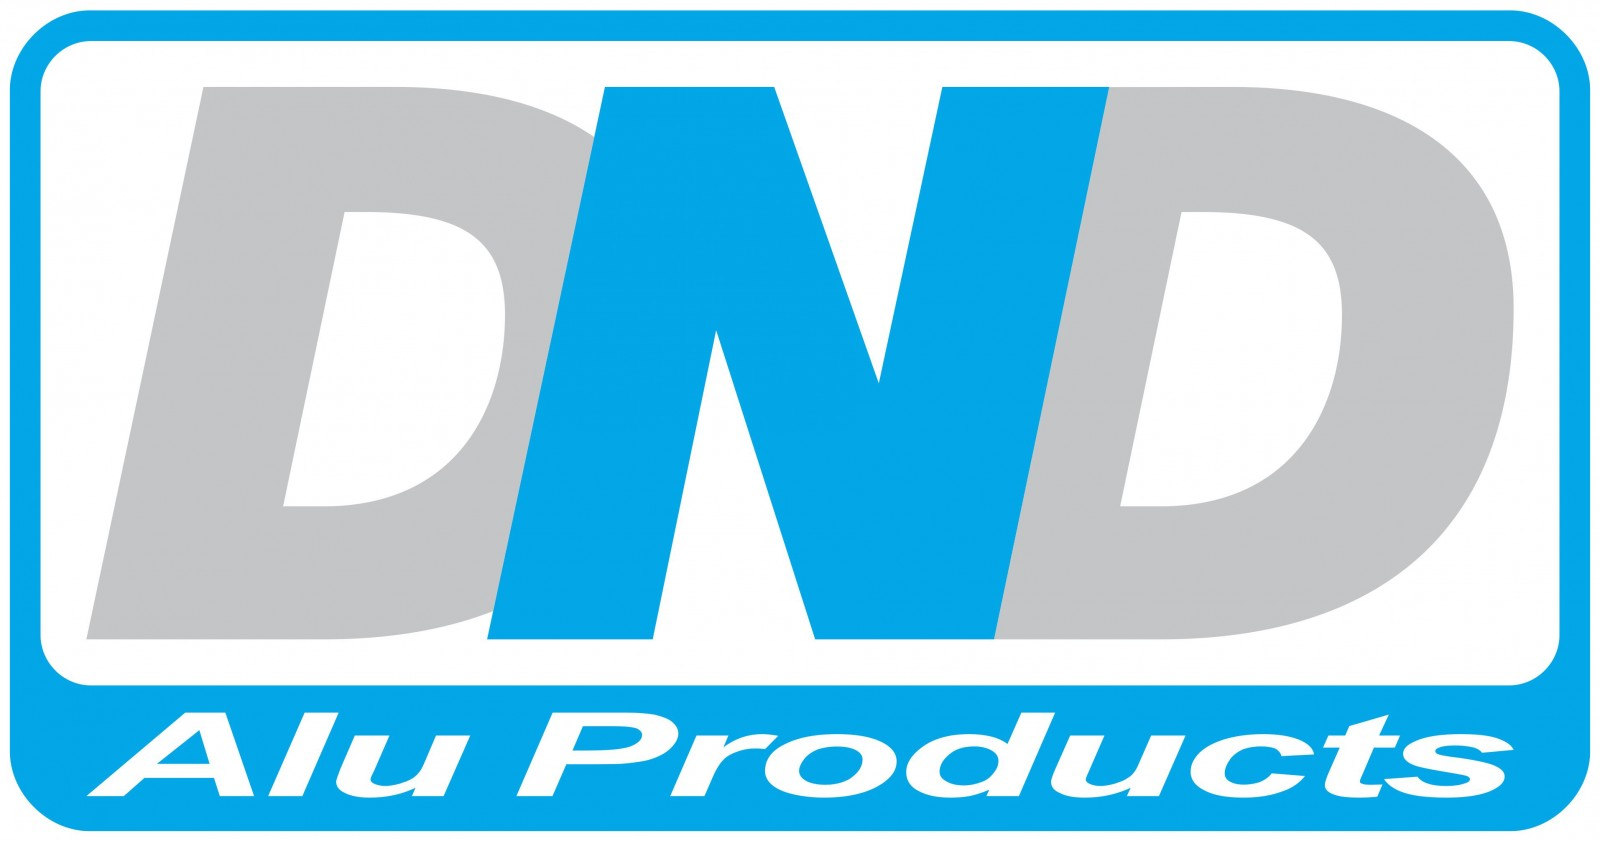 DND Alu Products – vacatures